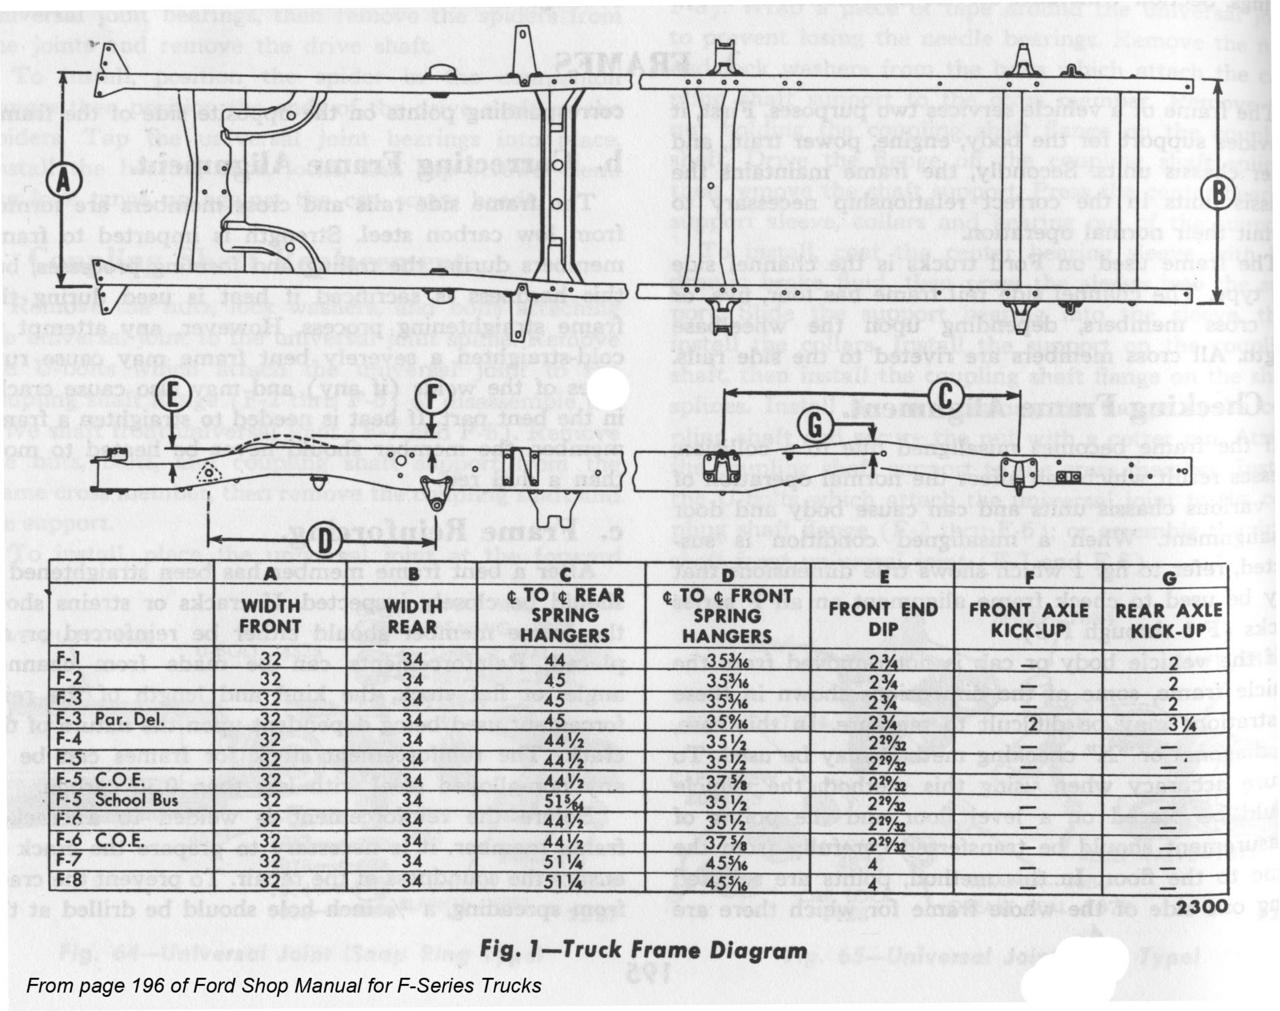 51 Ford F1 Wiring Diagram Trusted Schematics 1948 Dash Photo 49 Chassis Dimensions 1951 Album Vdubjim 1950 Truck